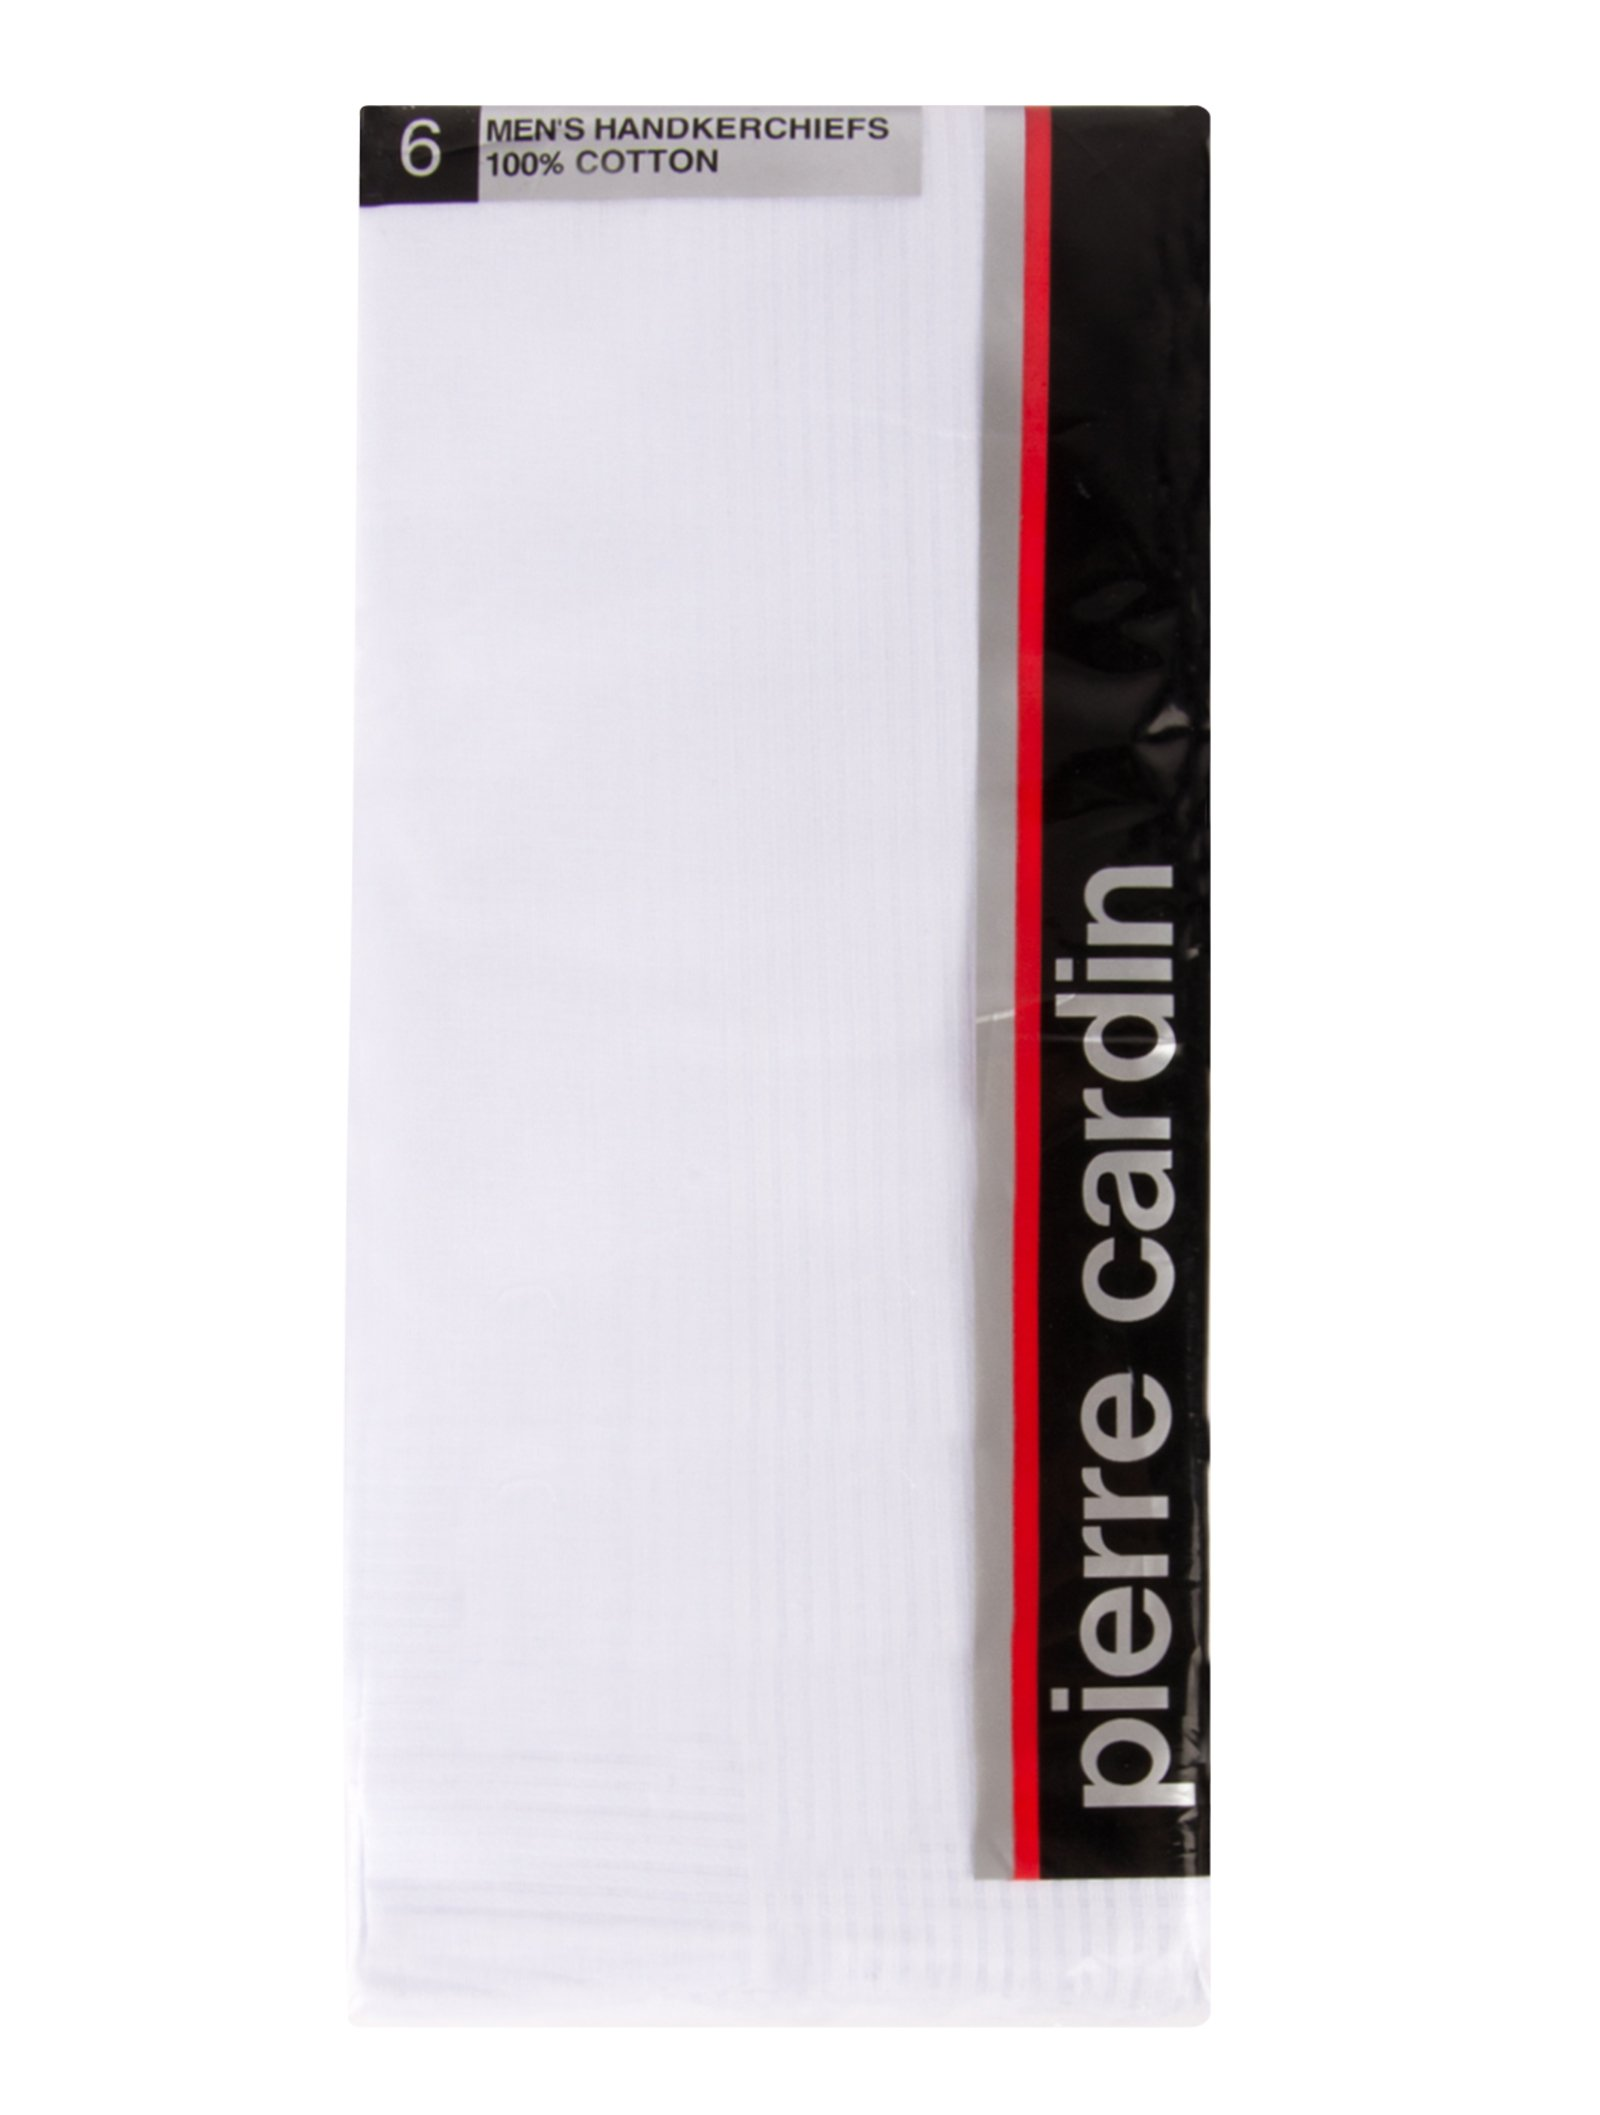 "Pierre Cardin Designer Classic Men's Handkerchiefs with Stripe 6 Pack Hankies Solid Pure White 100% Cotton Large 18"" x 18"""